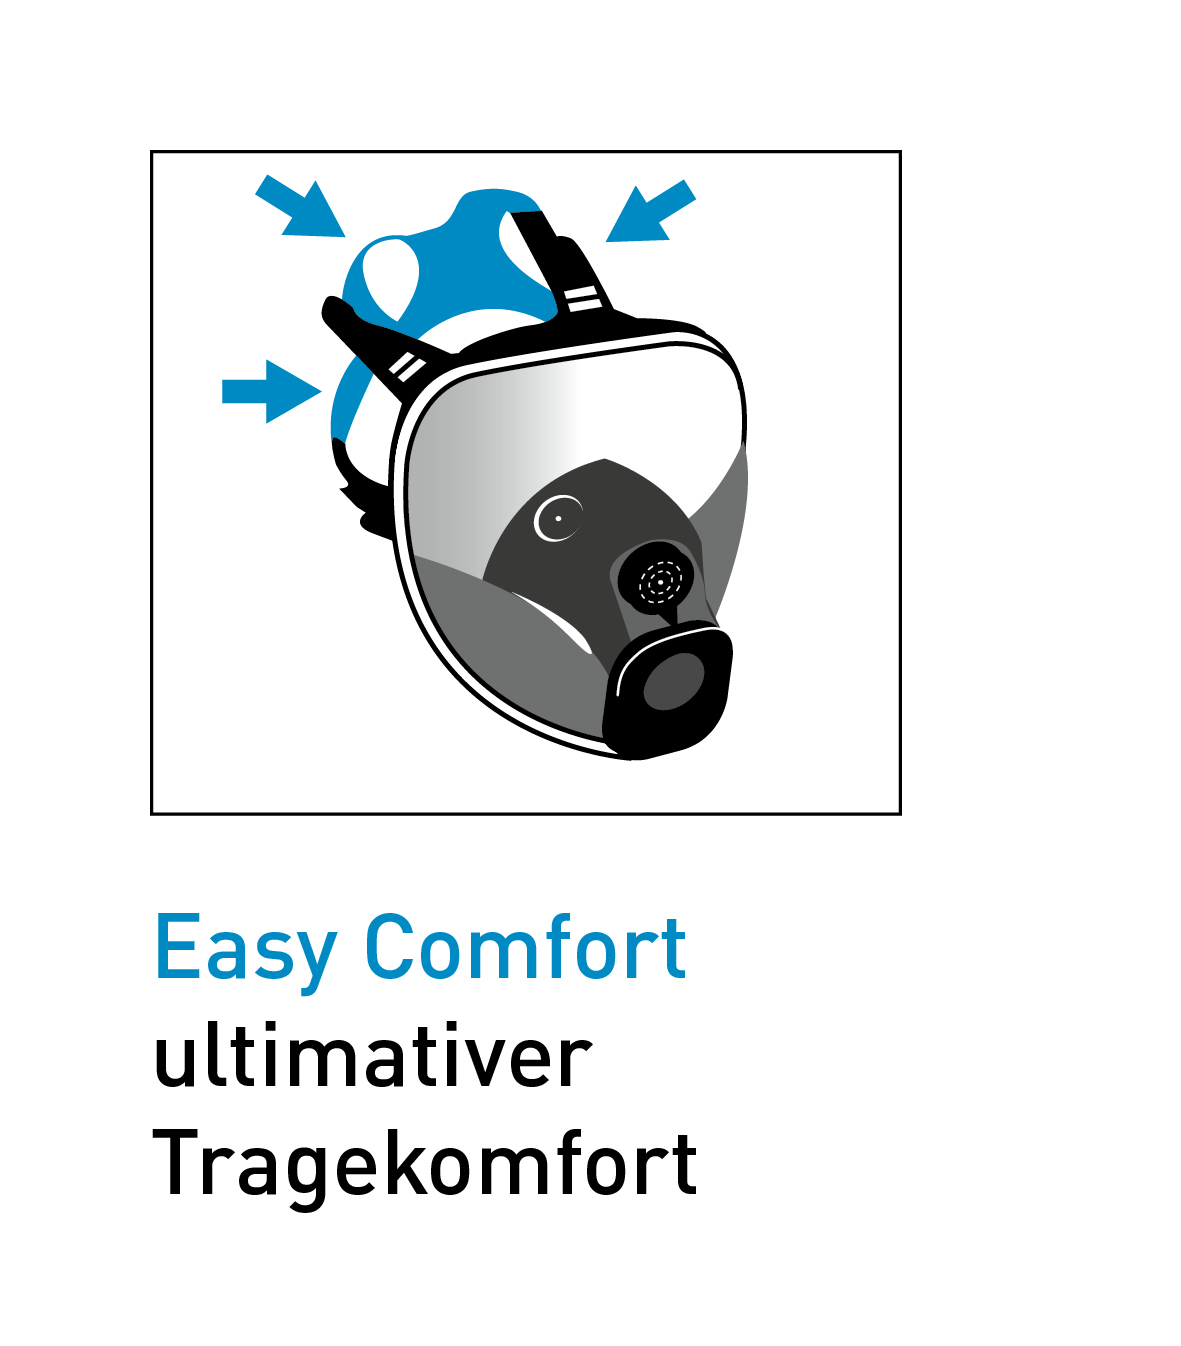 Easy Comfort deutsch